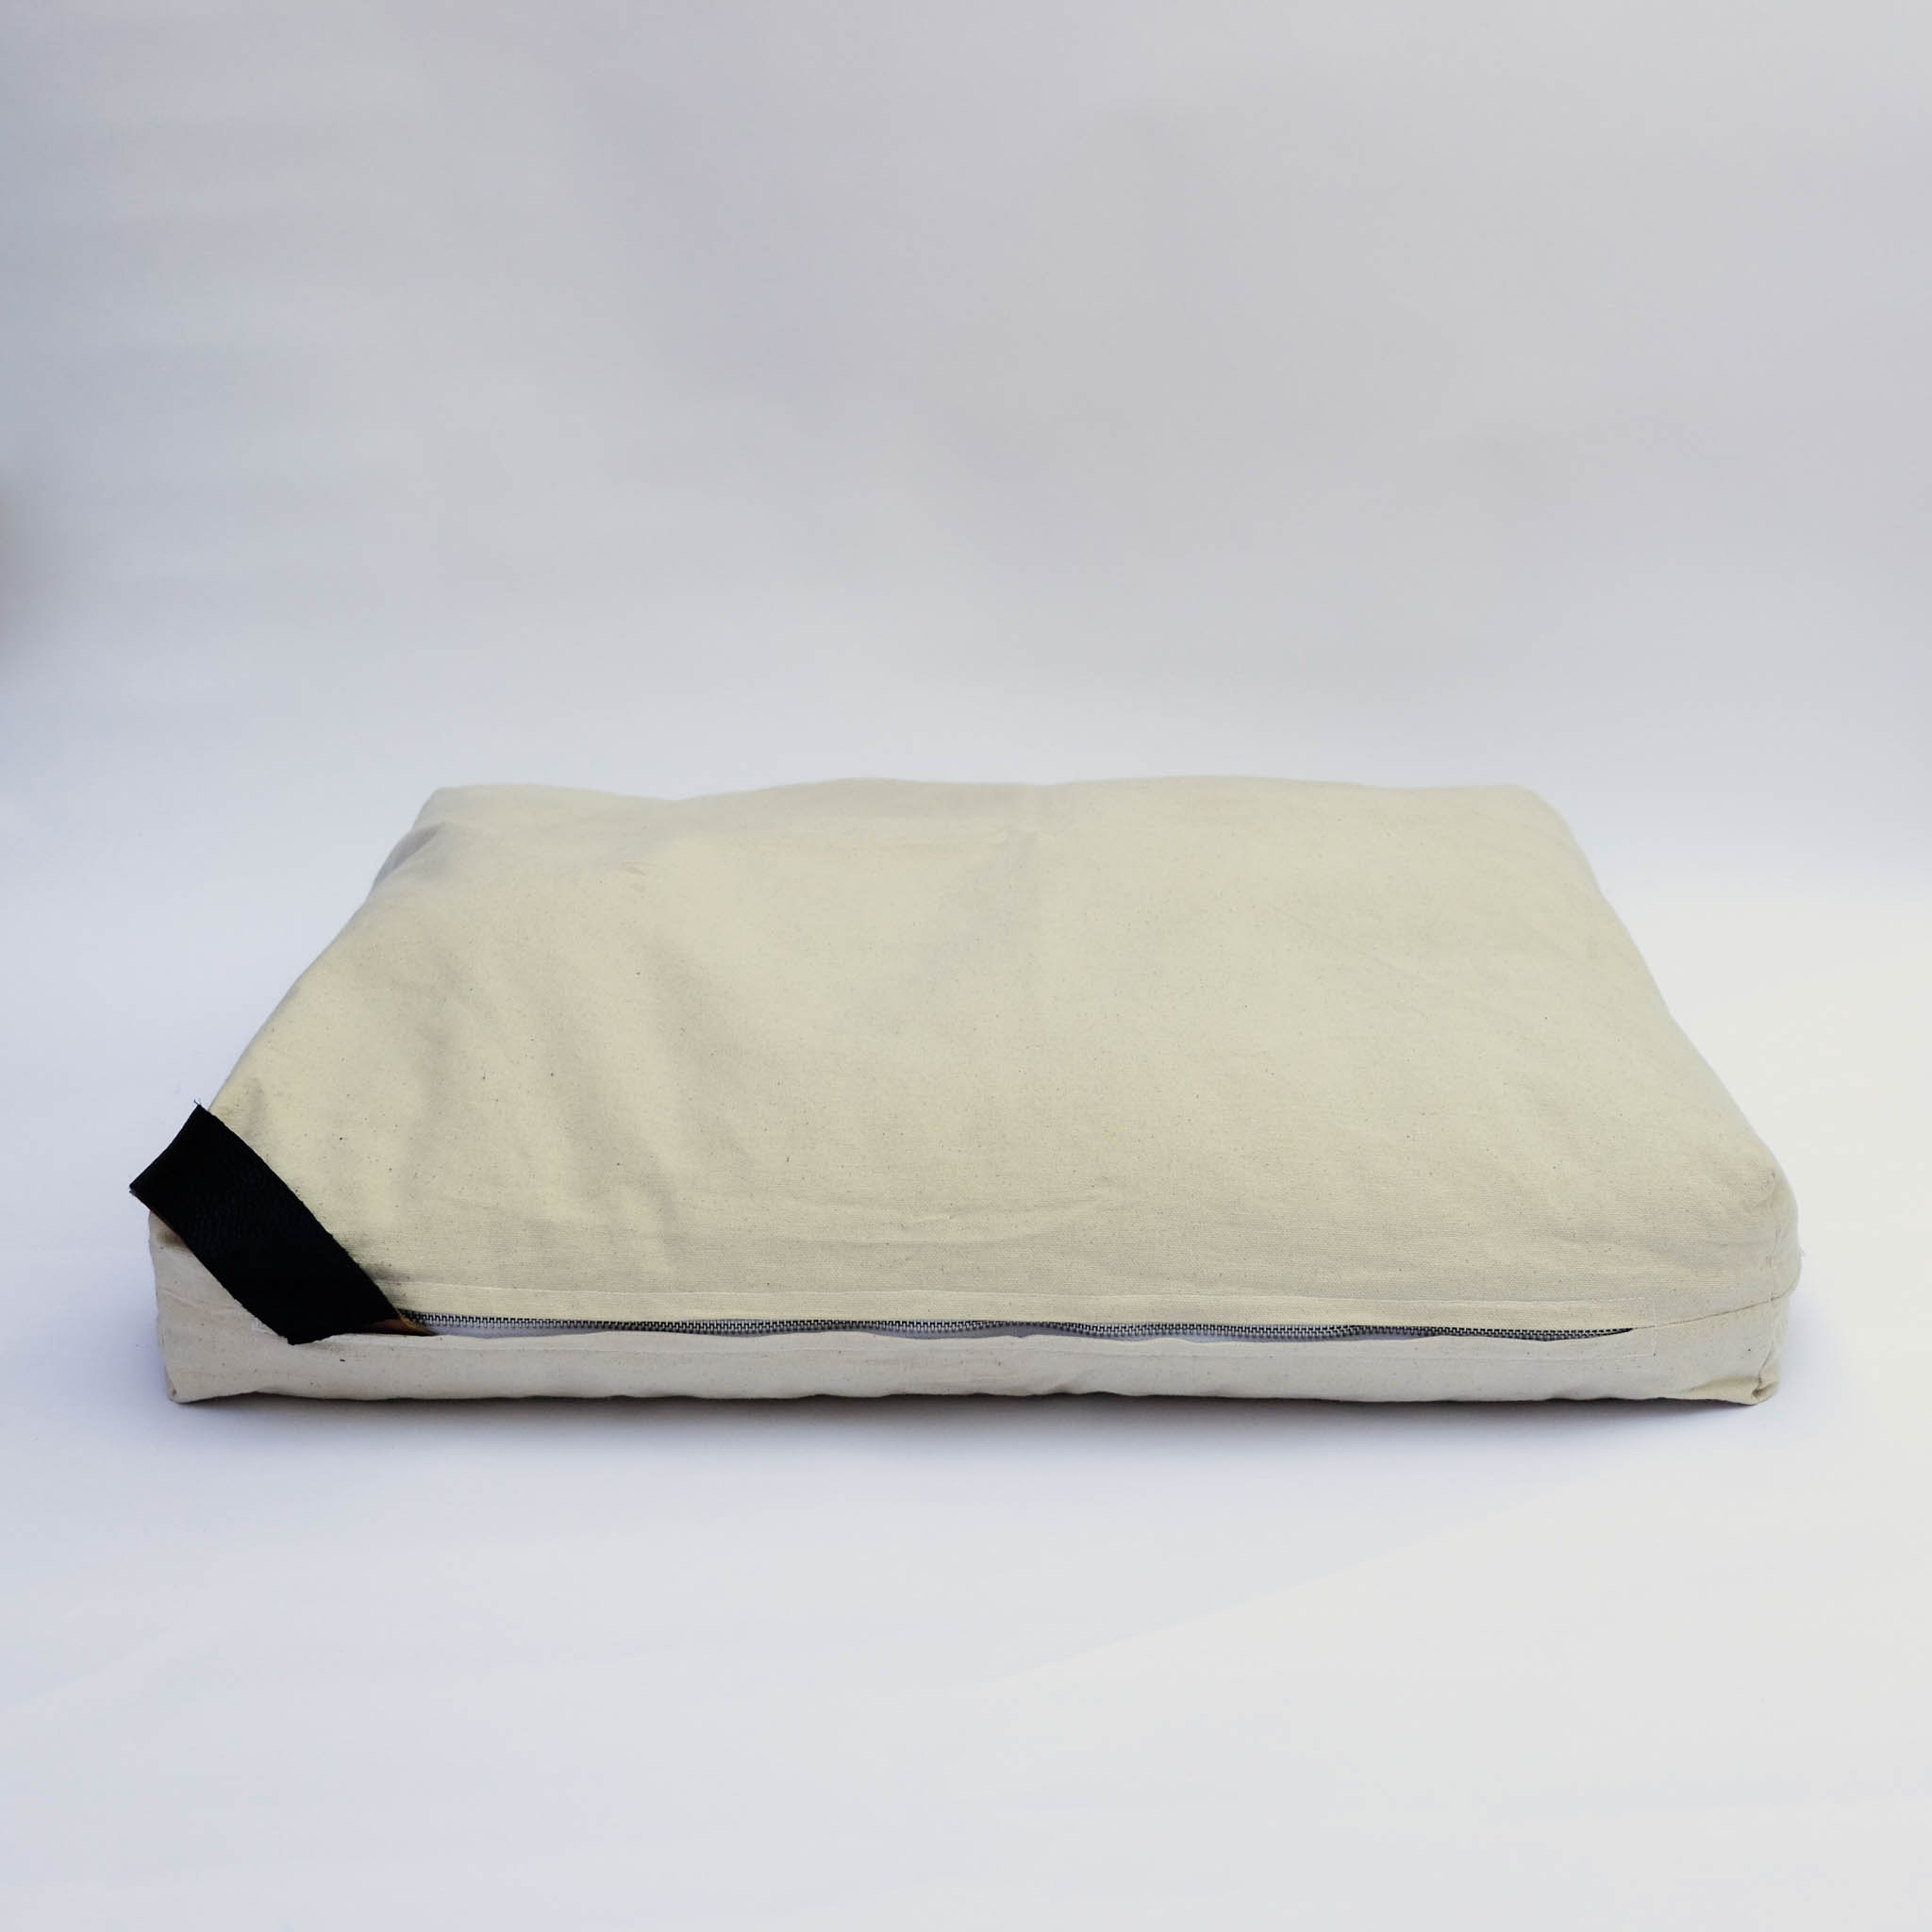 floor cushion naturally dyed sustainable organic cotton borrego sand black side view